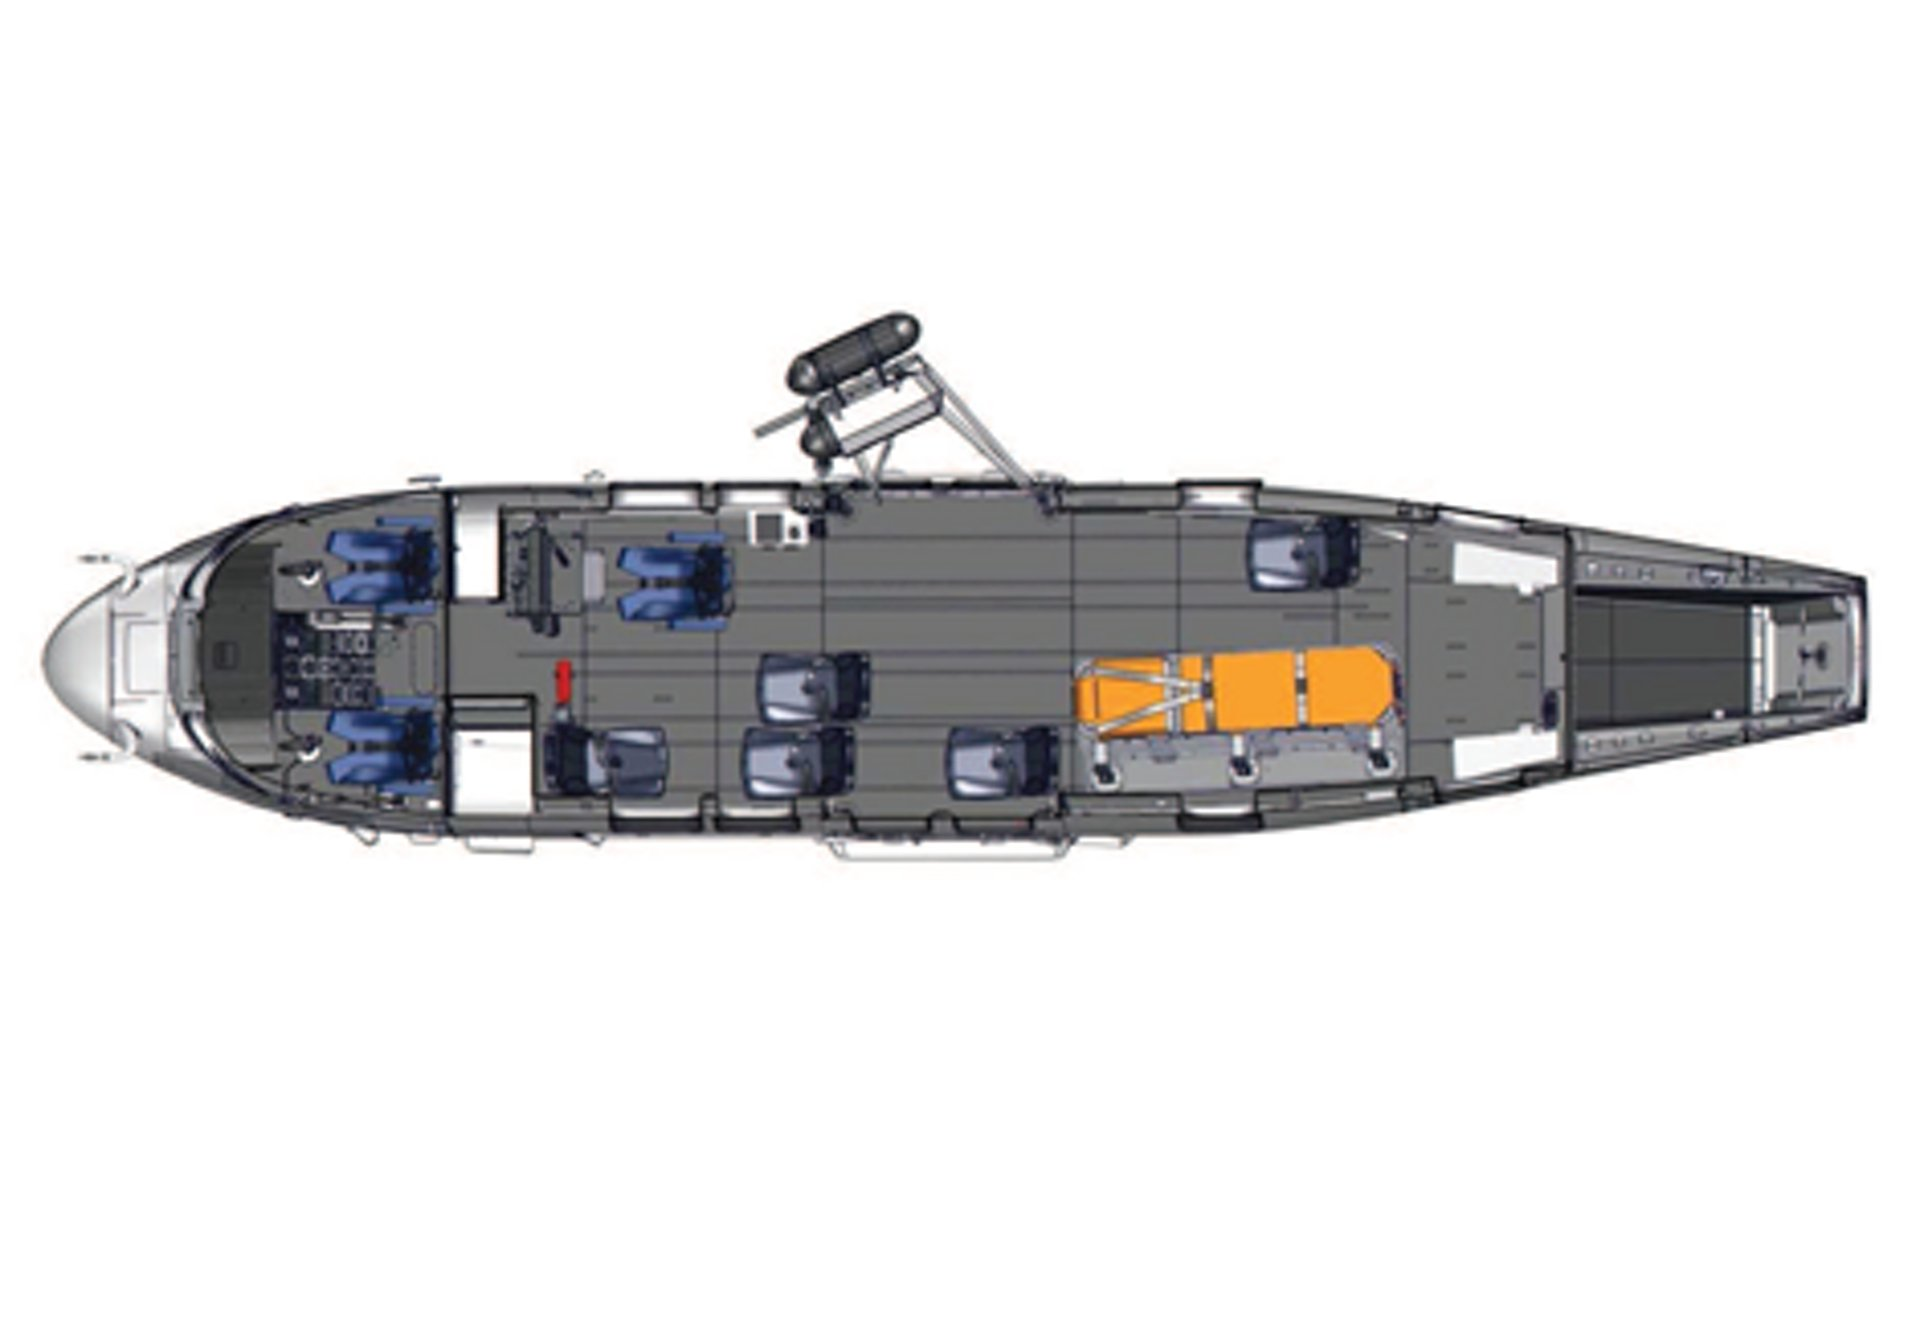 Diagram of an Airbus H225 helicopter cabin configured for search and rescue (SAR) operations.